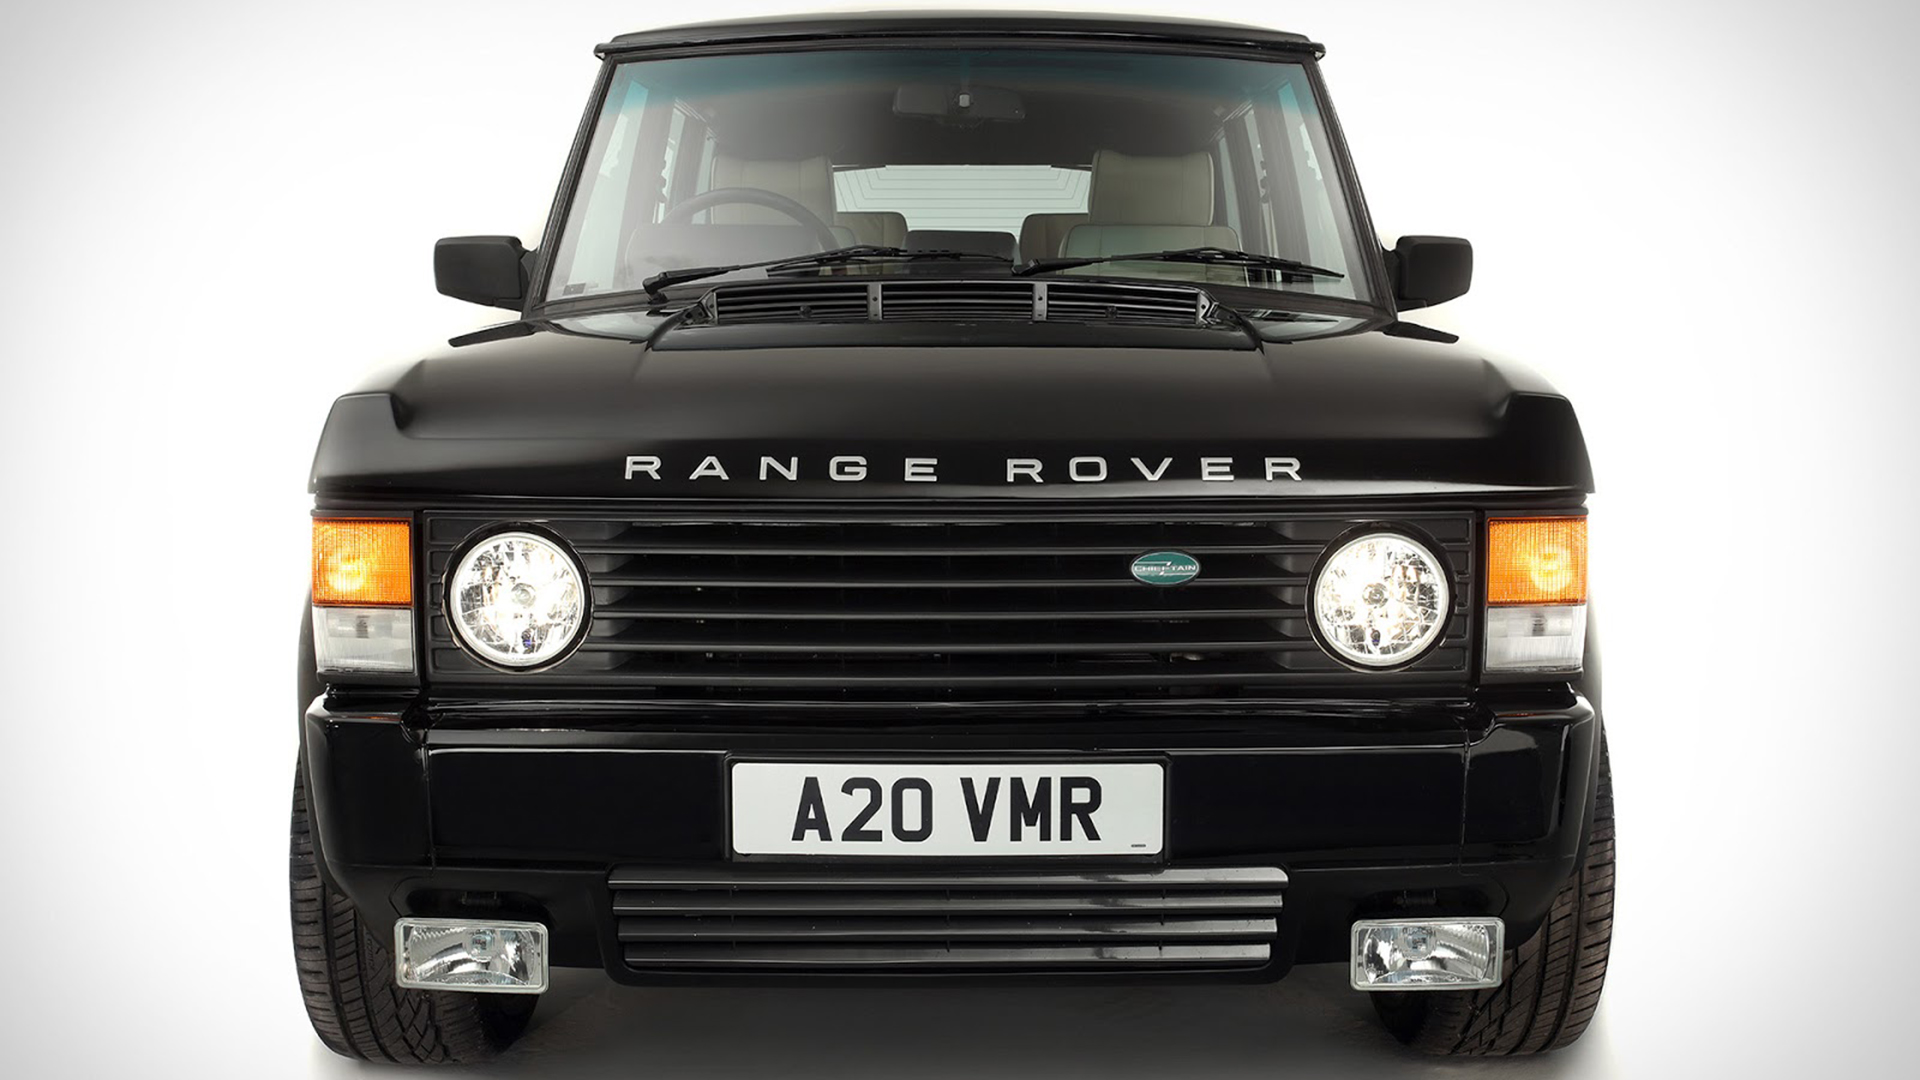 The Range Rover Chieftain Is a Classic Restomod With a